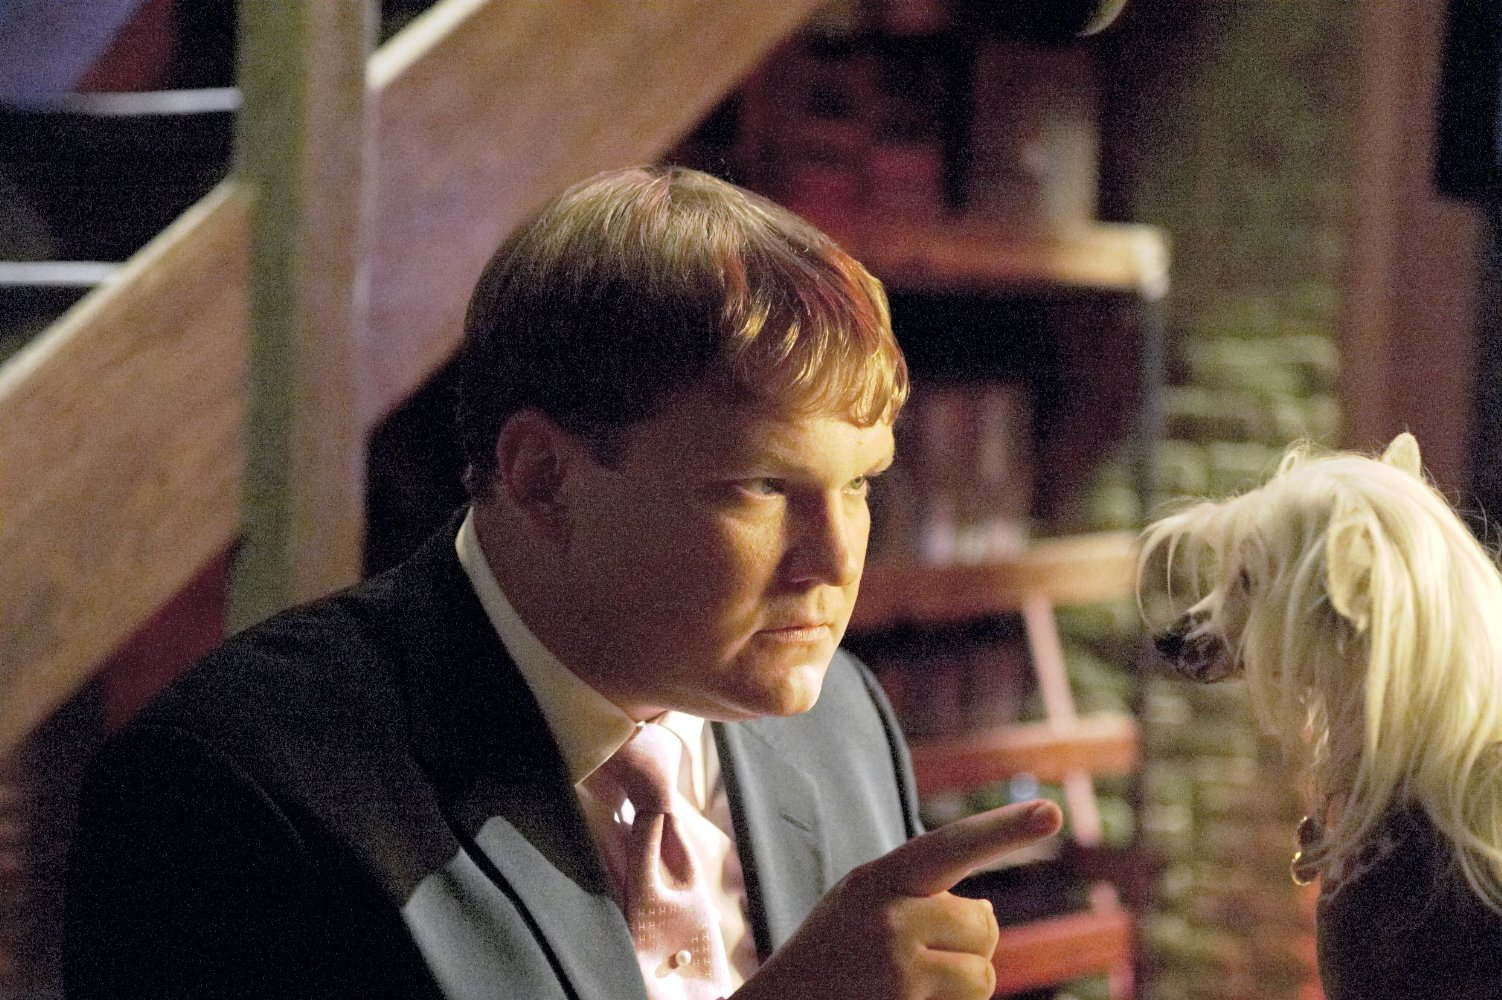 Andy Richter Nude all about celebrity andy richter! birthday: 28 october 1966